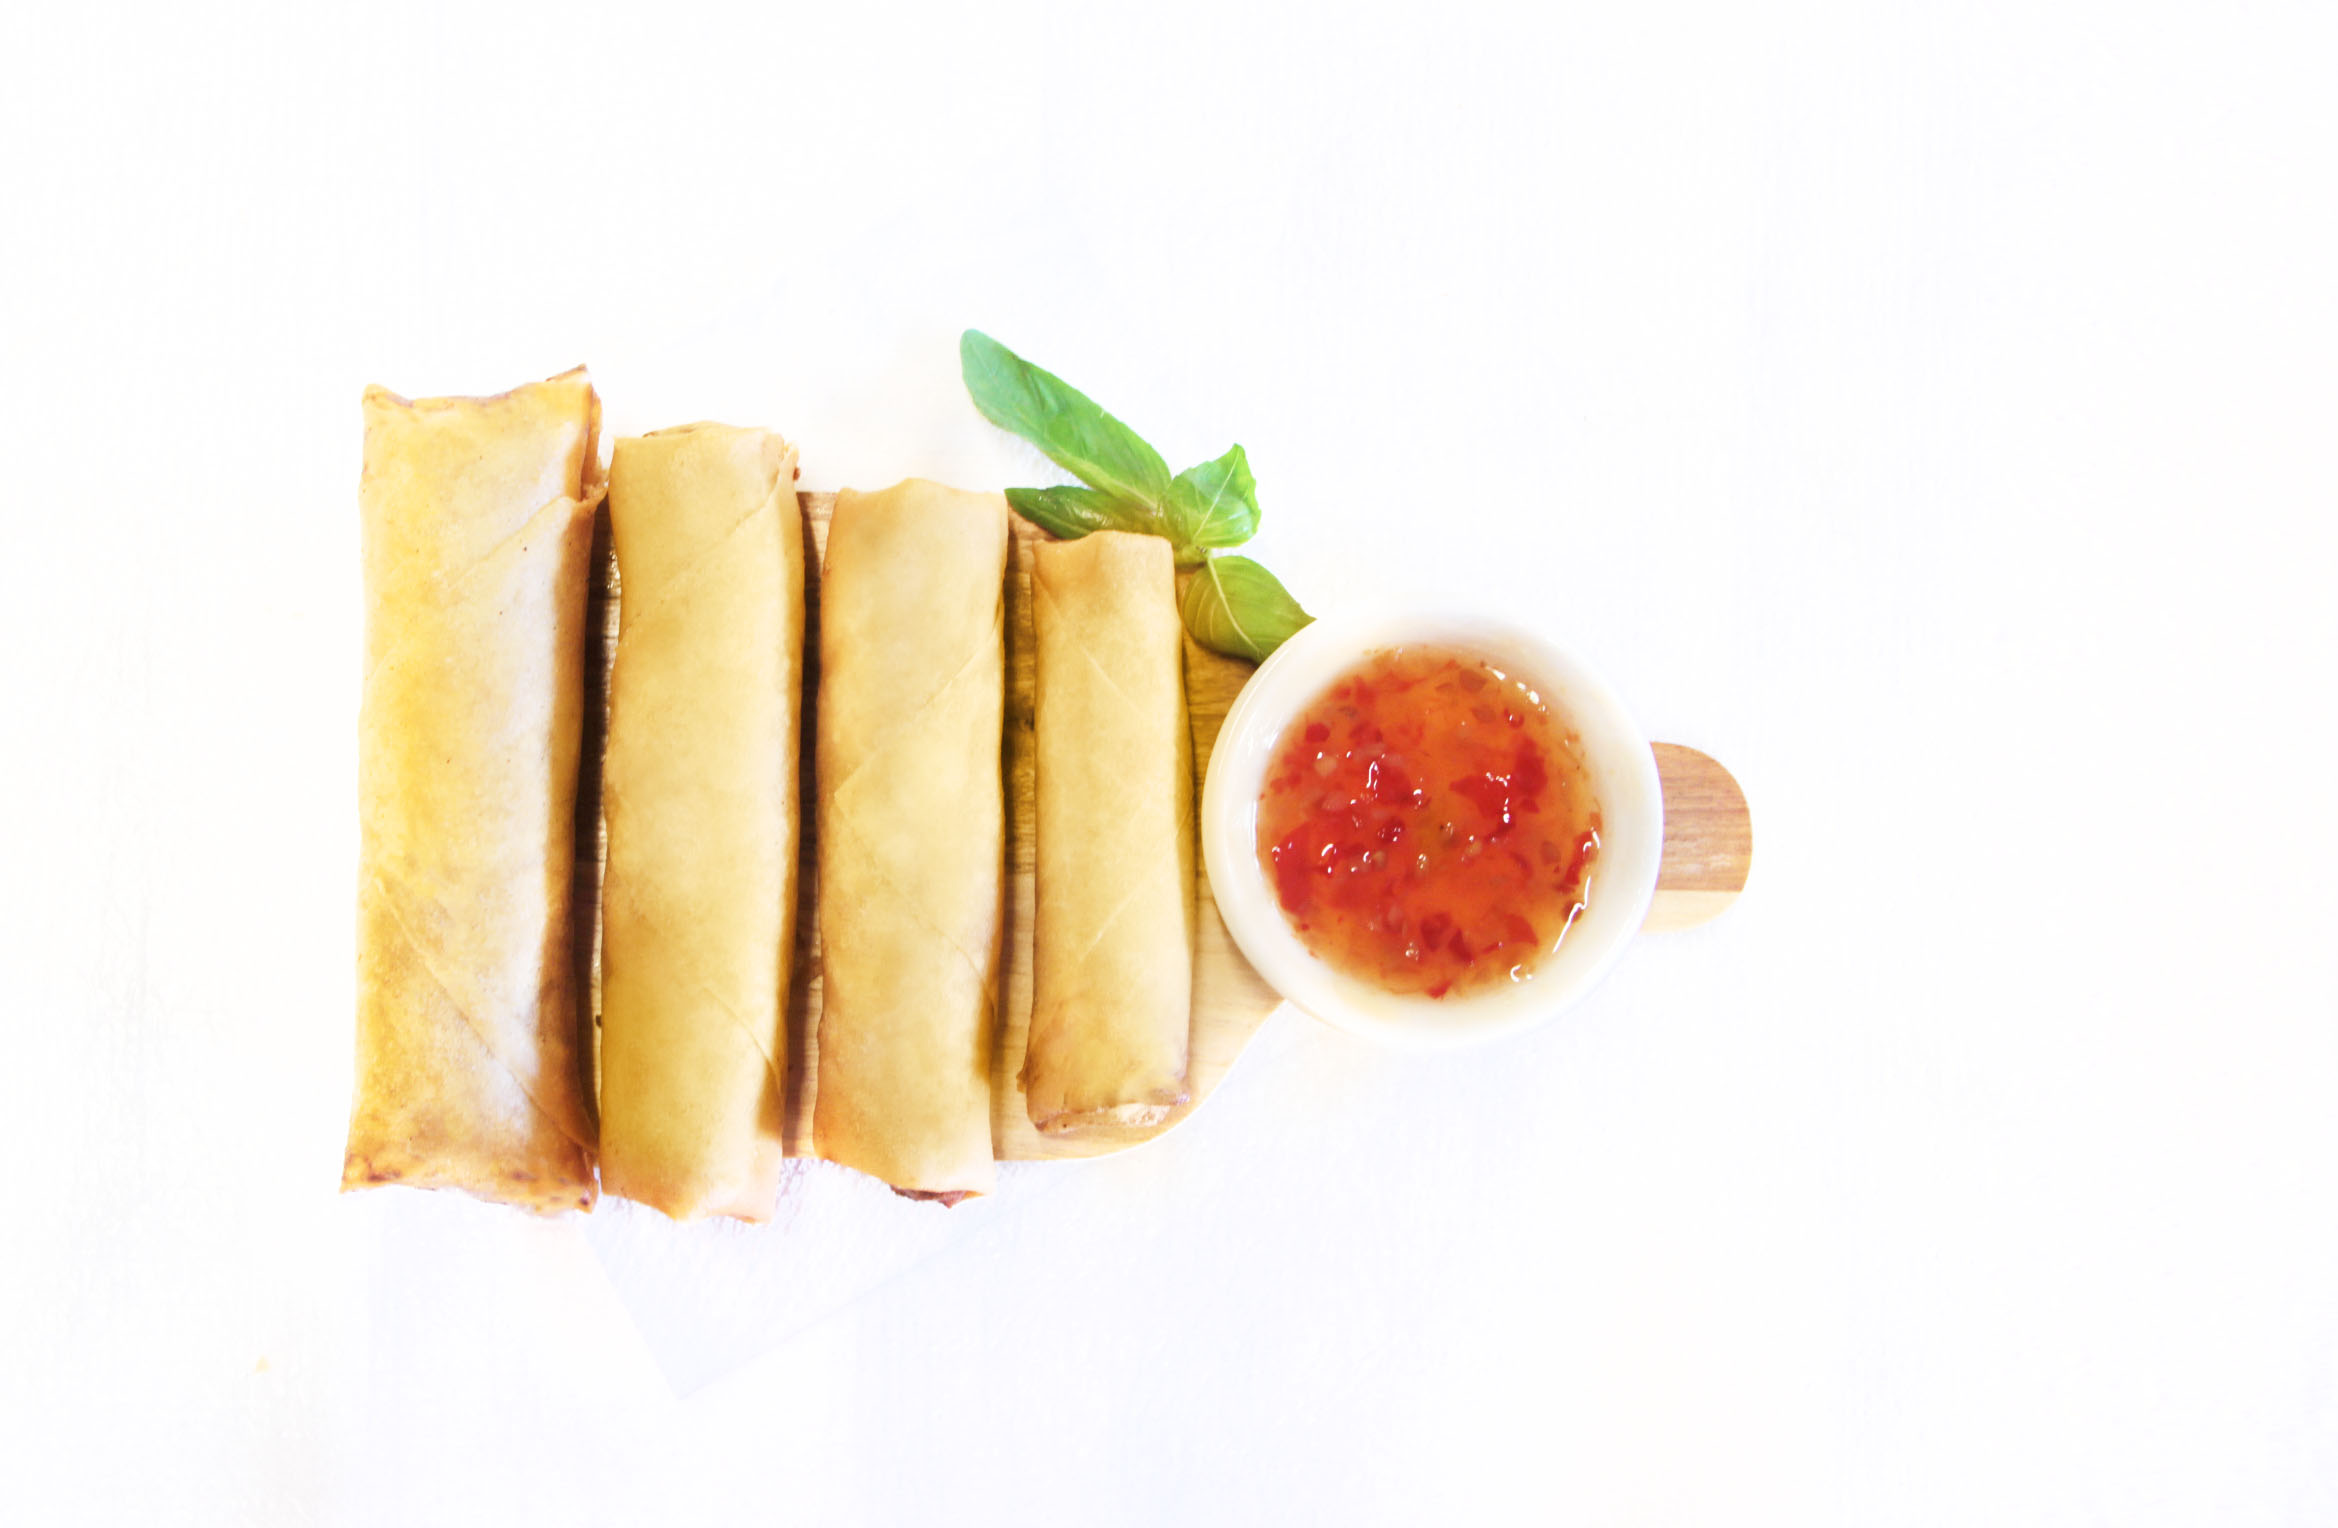 Kerko Spring Rolls - Our spring rolls come in a range of flavours and sizes and are perfect as an appetiser for any occasion.